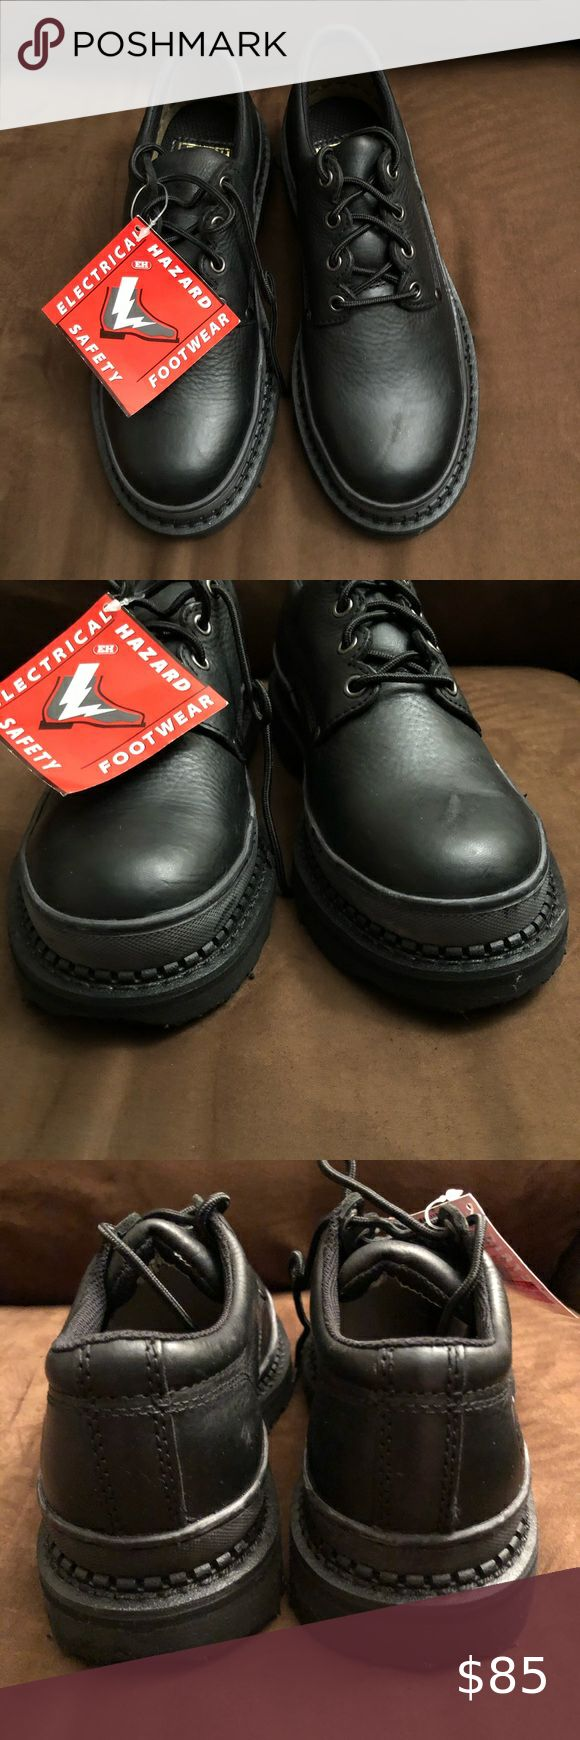 Lehigh Safety Work Shoes Unisex Black Leather 7.5 in 2020